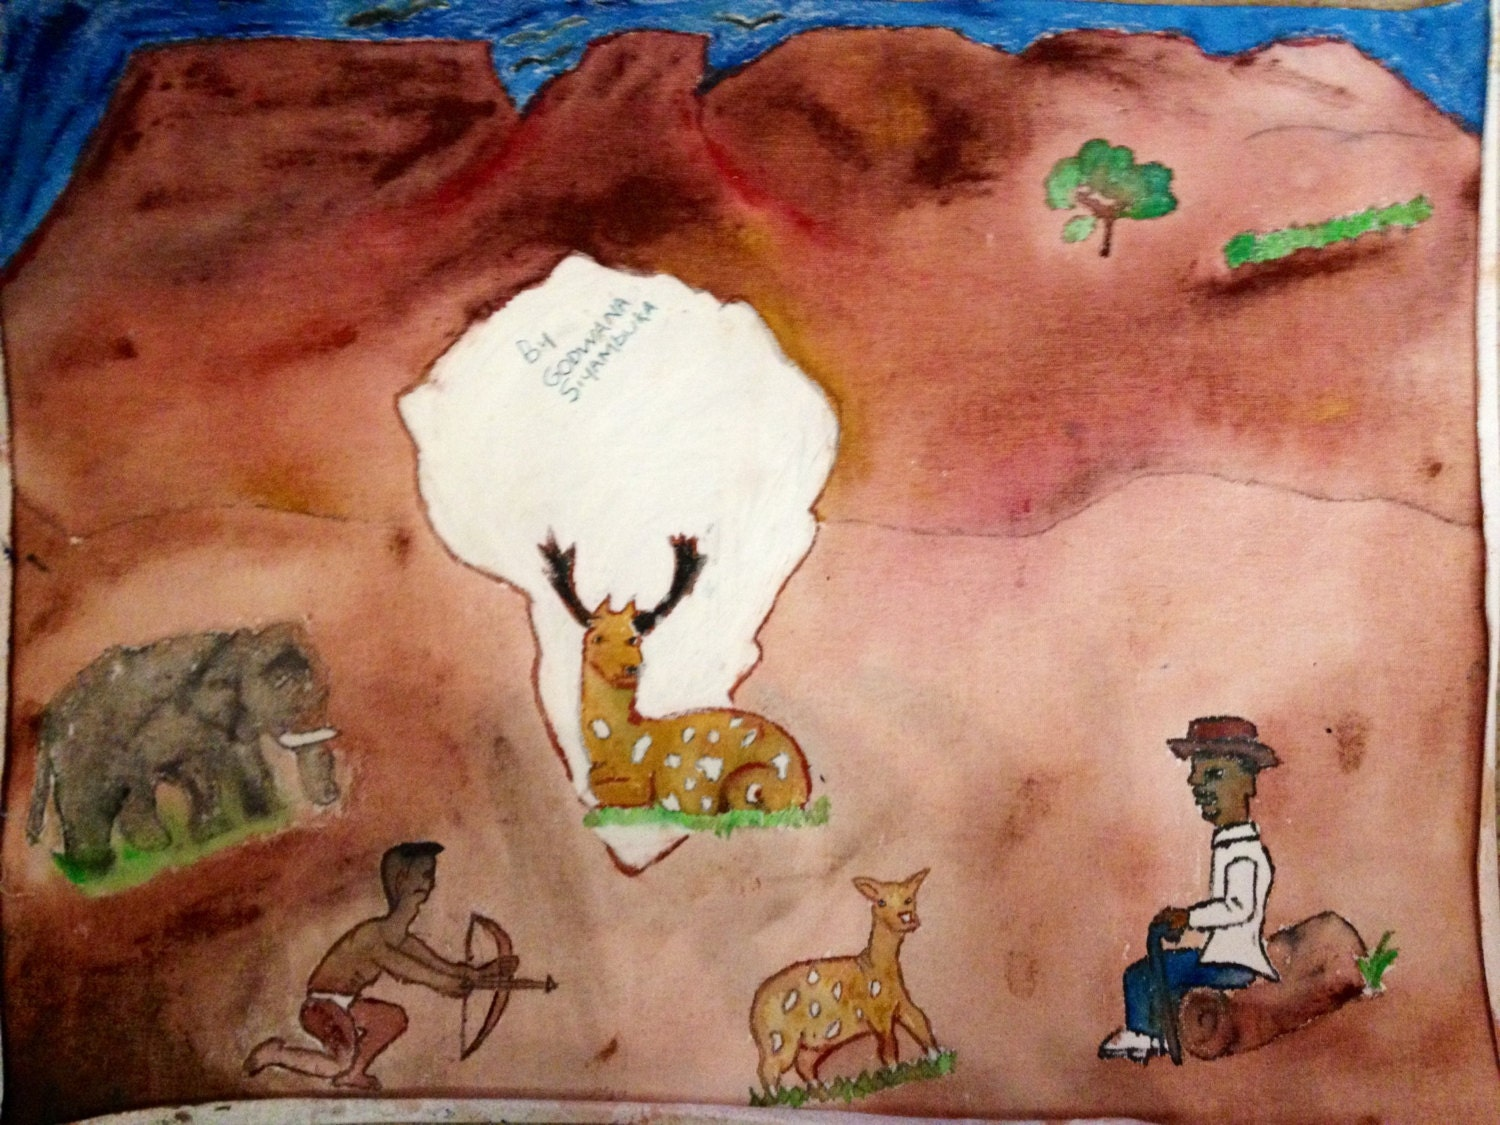 Original painting by a South African Child - LovetoLanga